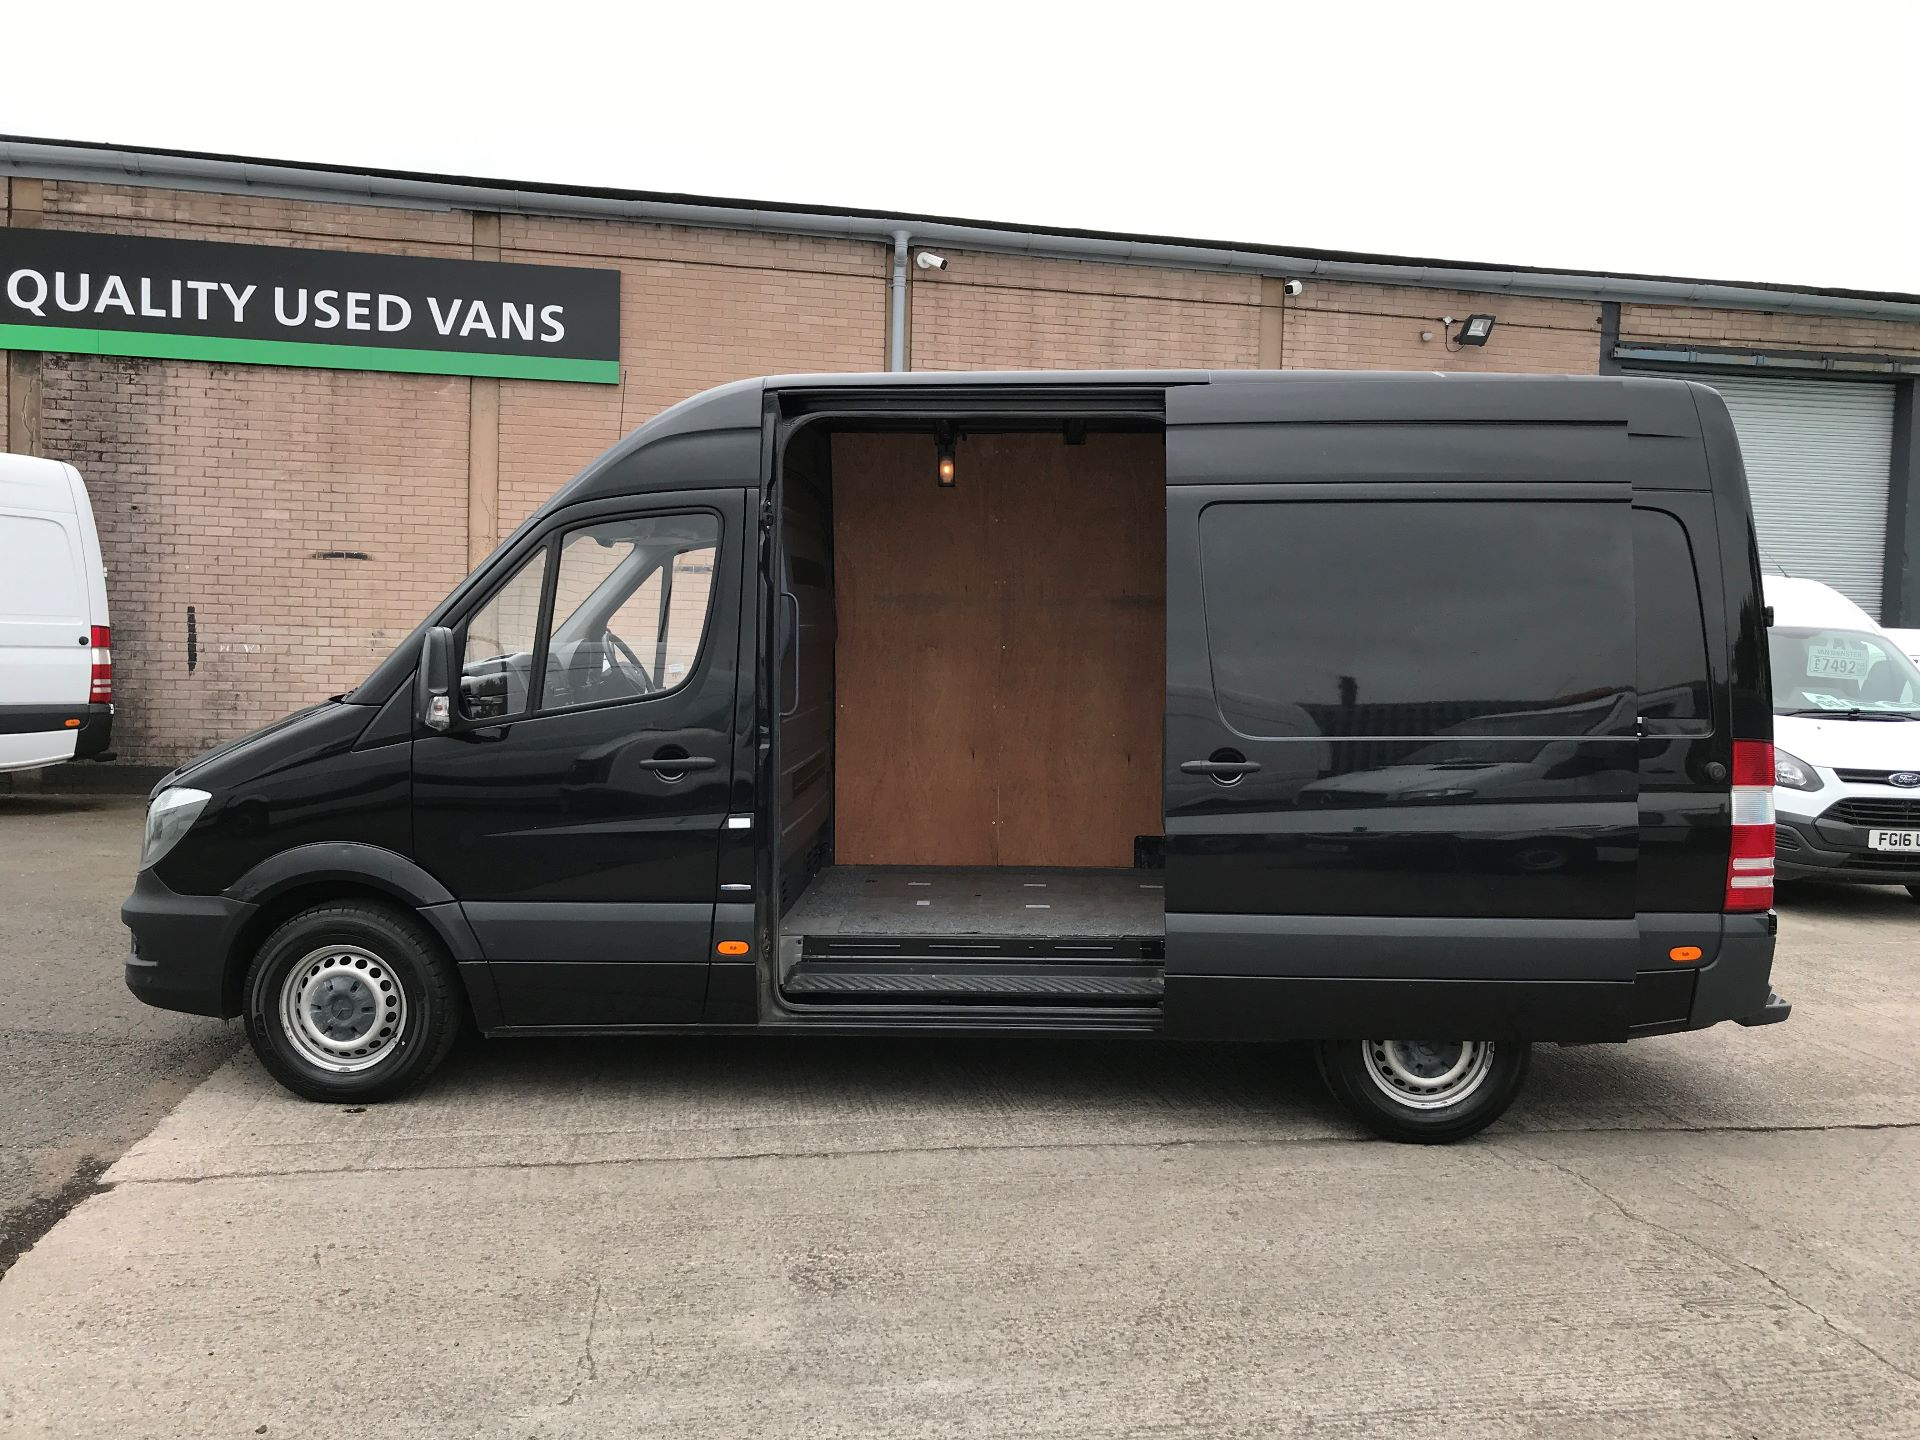 2017 Mercedes-Benz Sprinter 314CDI MWB HIGH ROOF 140PS EURO 6 AIR CON (KN17NXE) Image 19